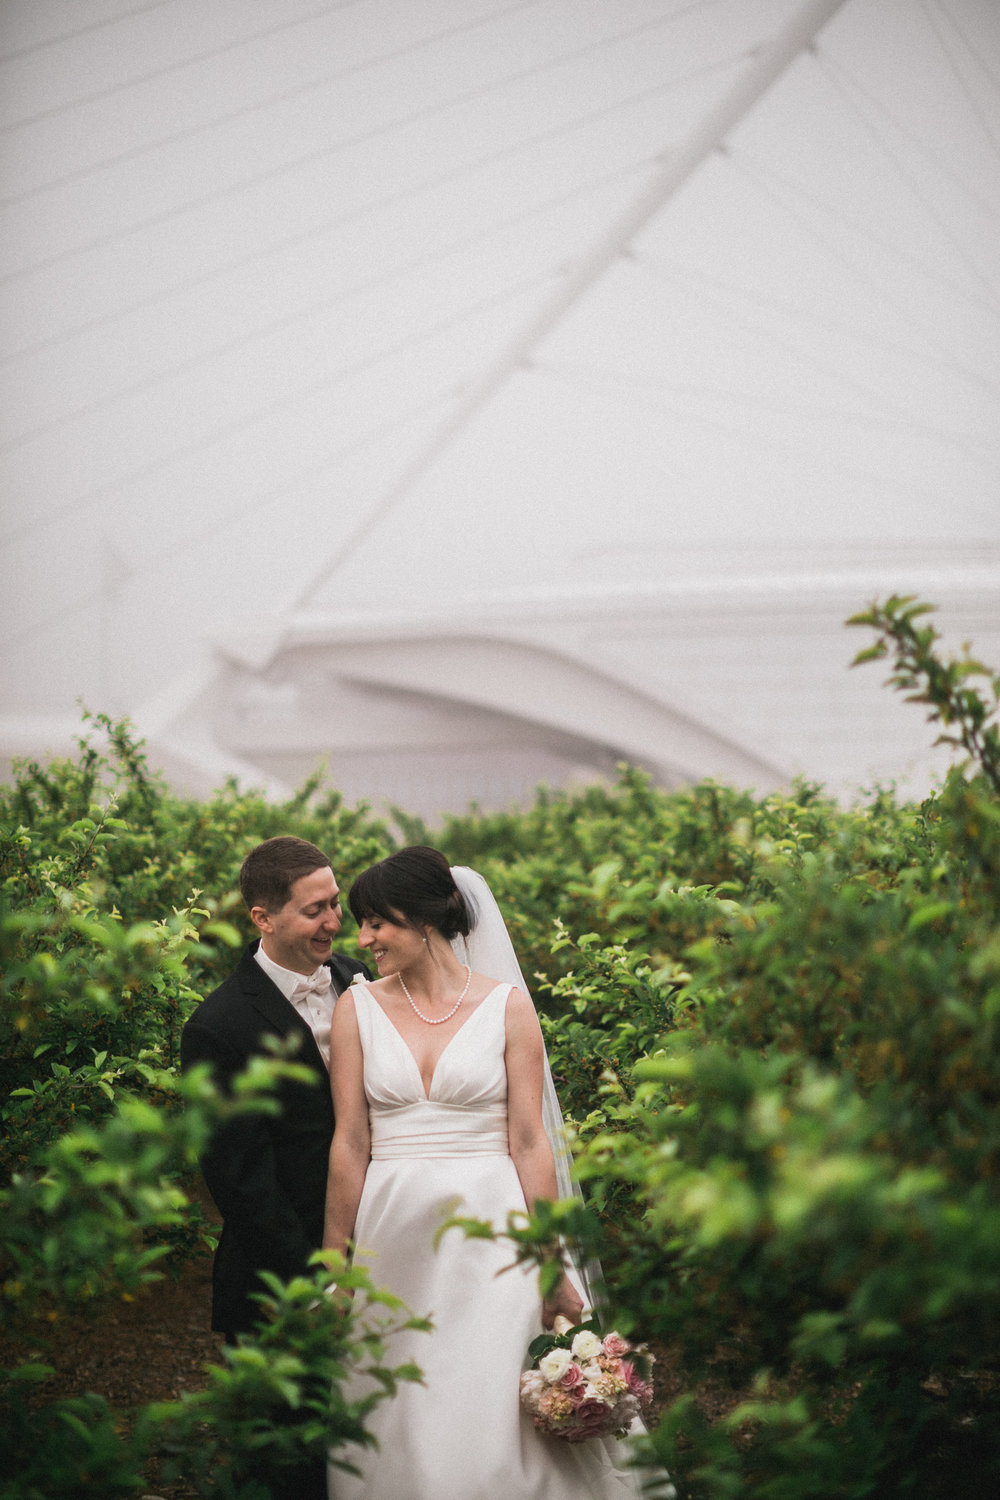 Wisconsin_Wedding_acowsay_Uttke_Photography_Couple_2.jpg